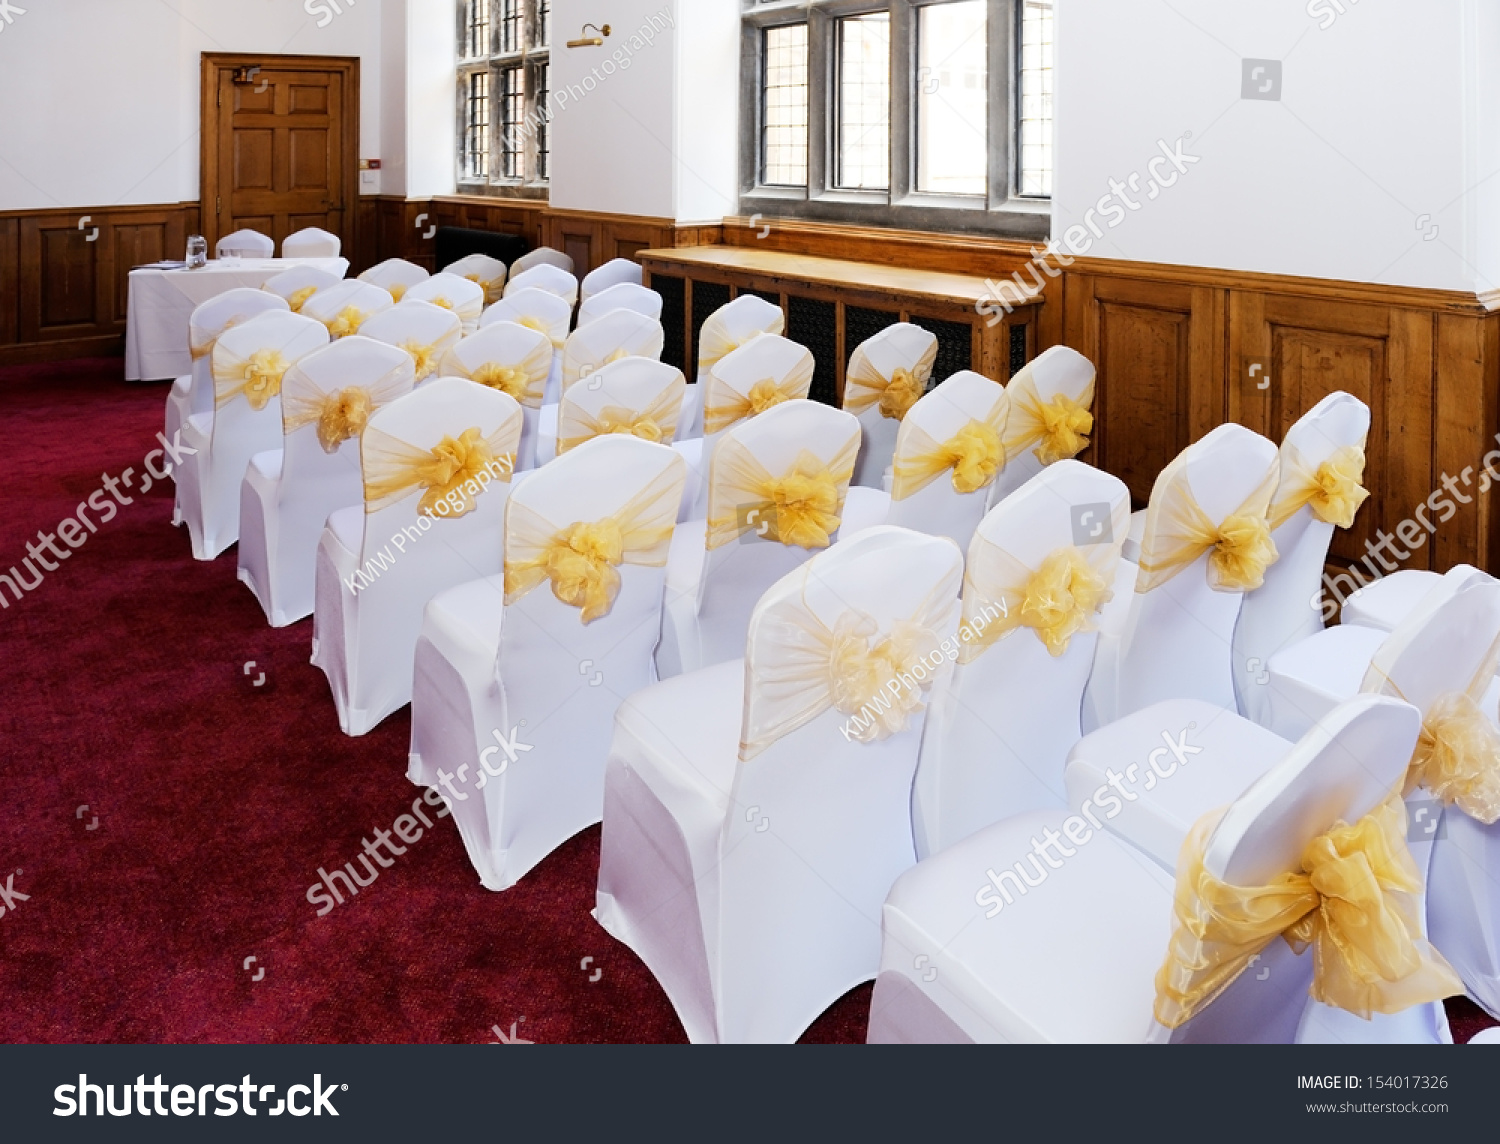 Wedding Ceremony Furniture And Chairs With White Covers And Yellow Ribbon Stock Photo 154017326